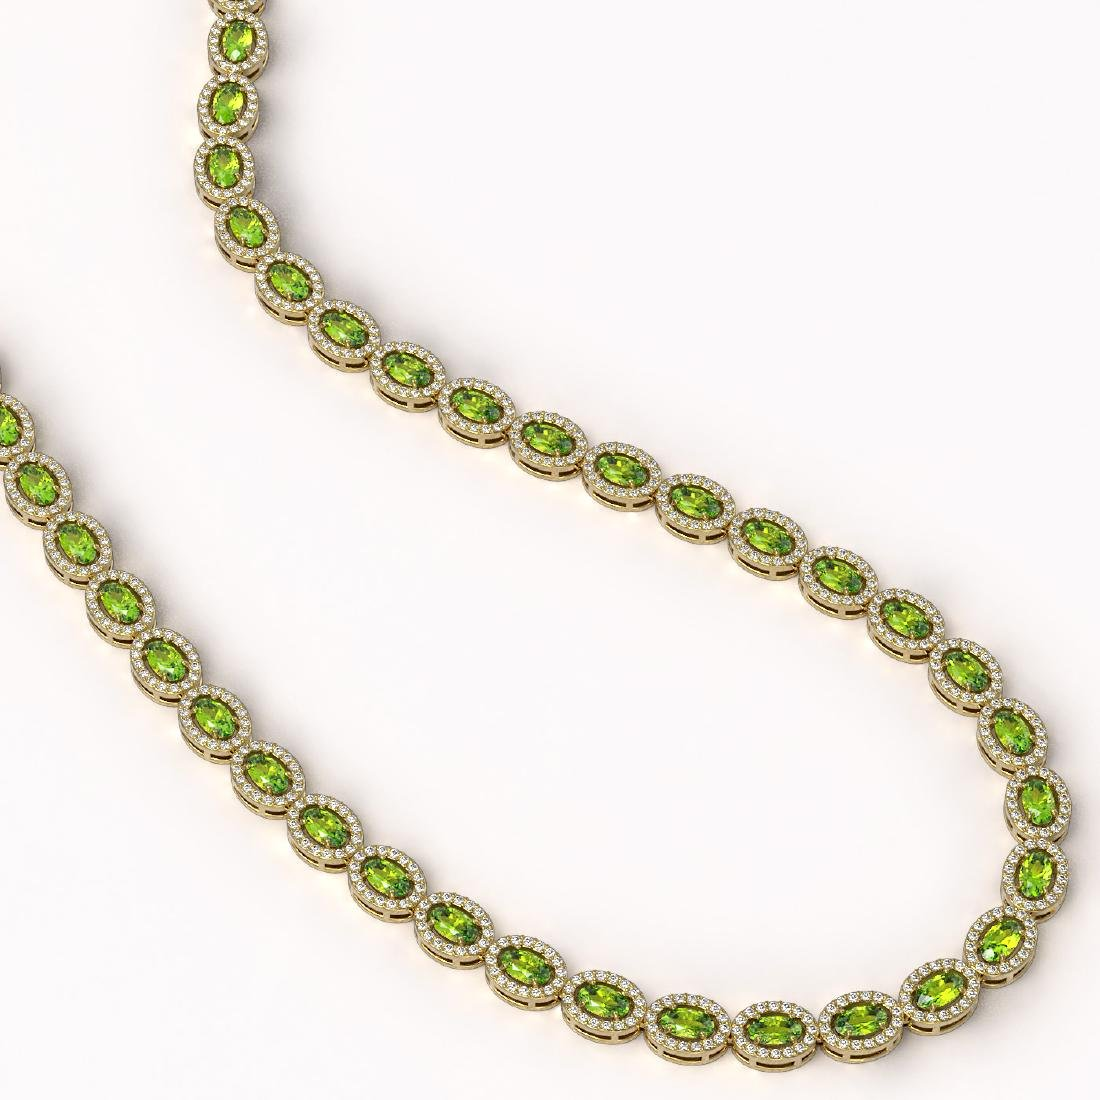 23.86 CTW Peridot & Diamond Halo Necklace 10K Yellow - 2